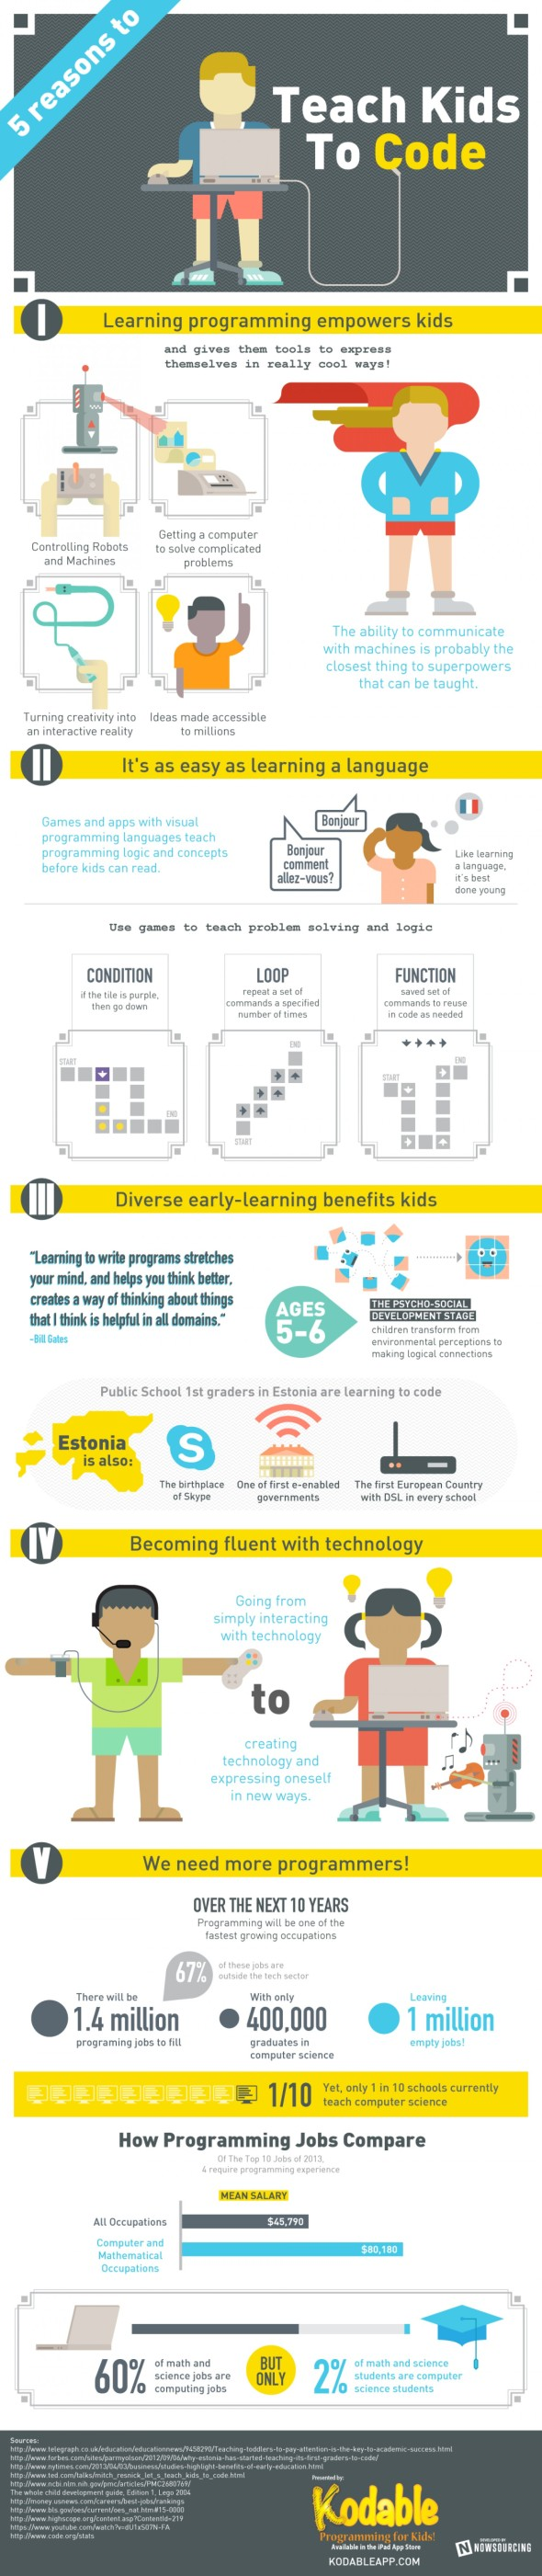 5-reasons-to-teach-kids-to-code_525c170a49149_w1500.png